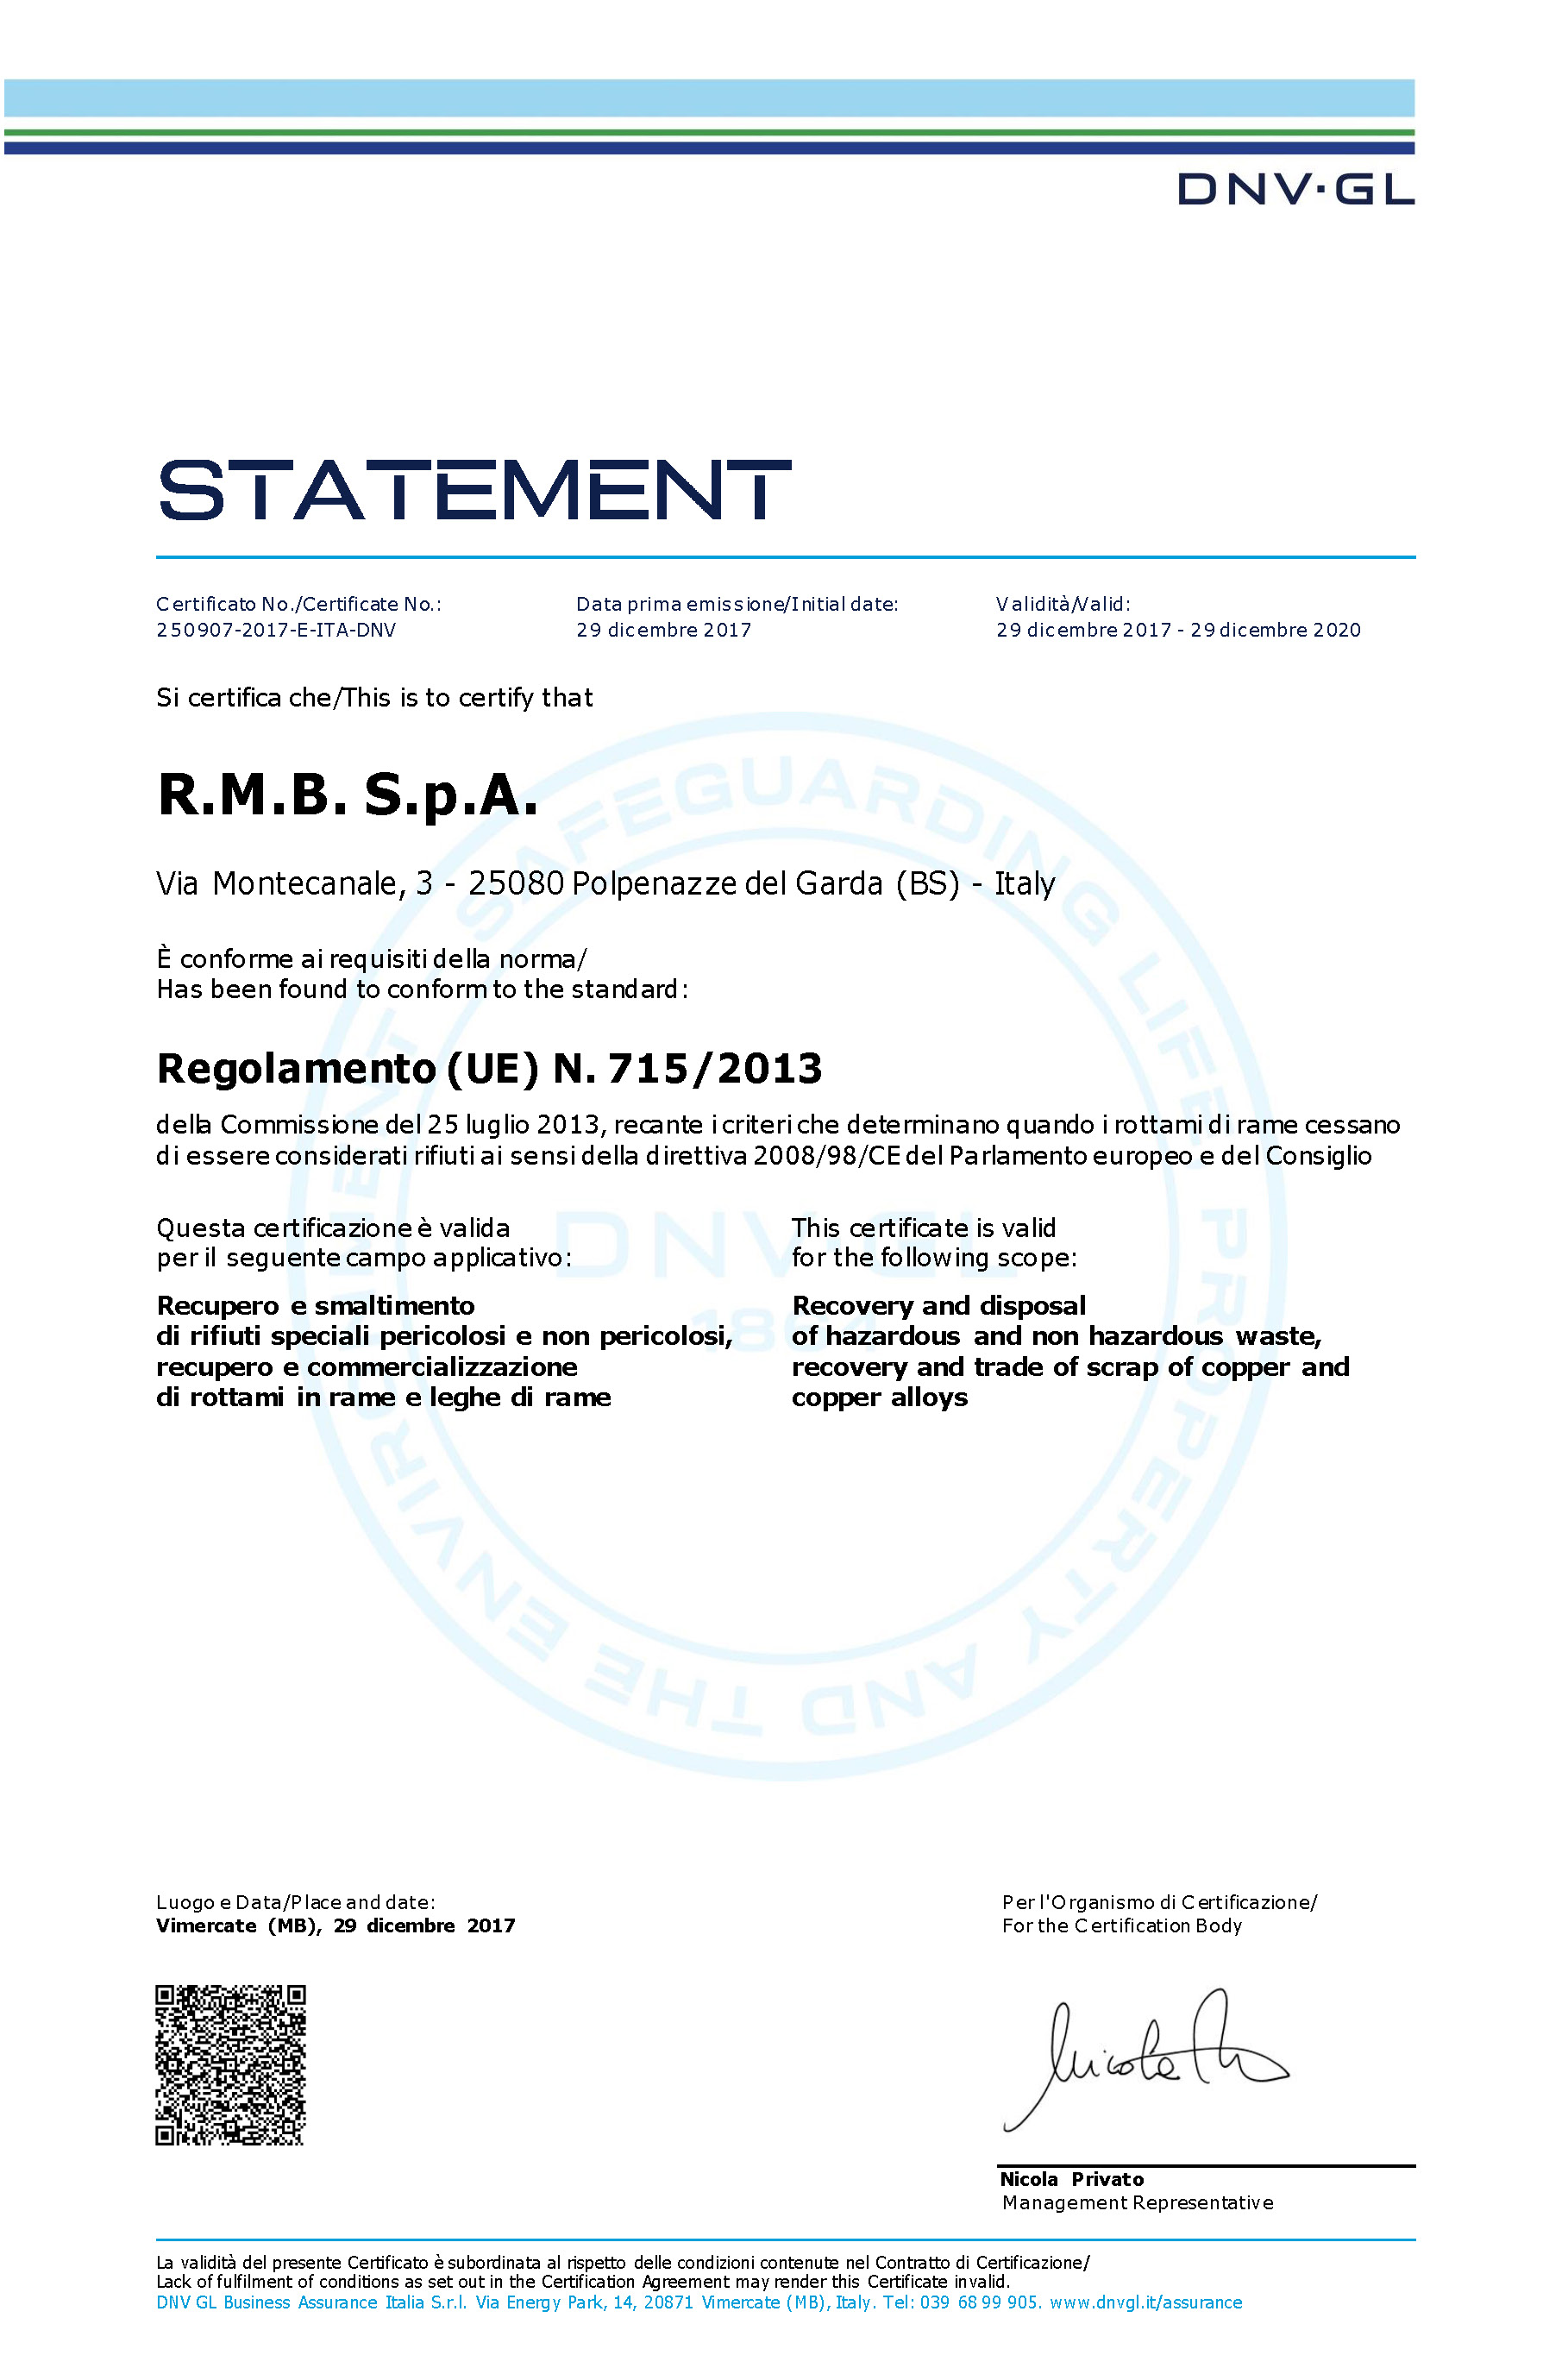 Environmental compatibility and safety certifications certificate dnv ue regulation 7152013 1betcityfo Image collections